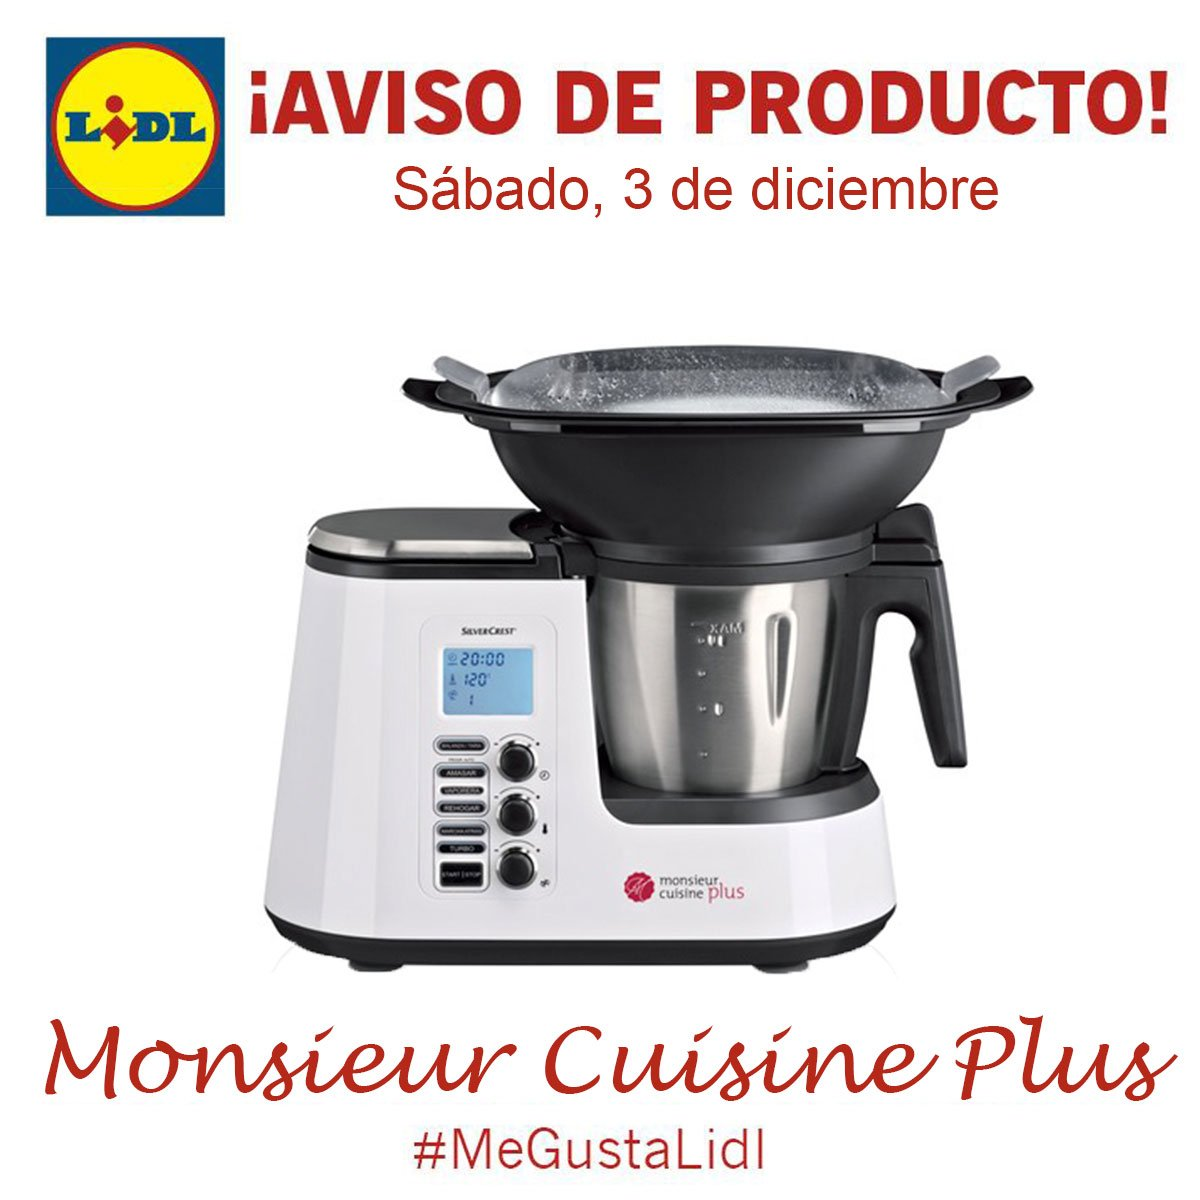 Lidl espa a on twitter atenci n ma ana s bado 3 de for Silvercrest monsieur cuisine plus